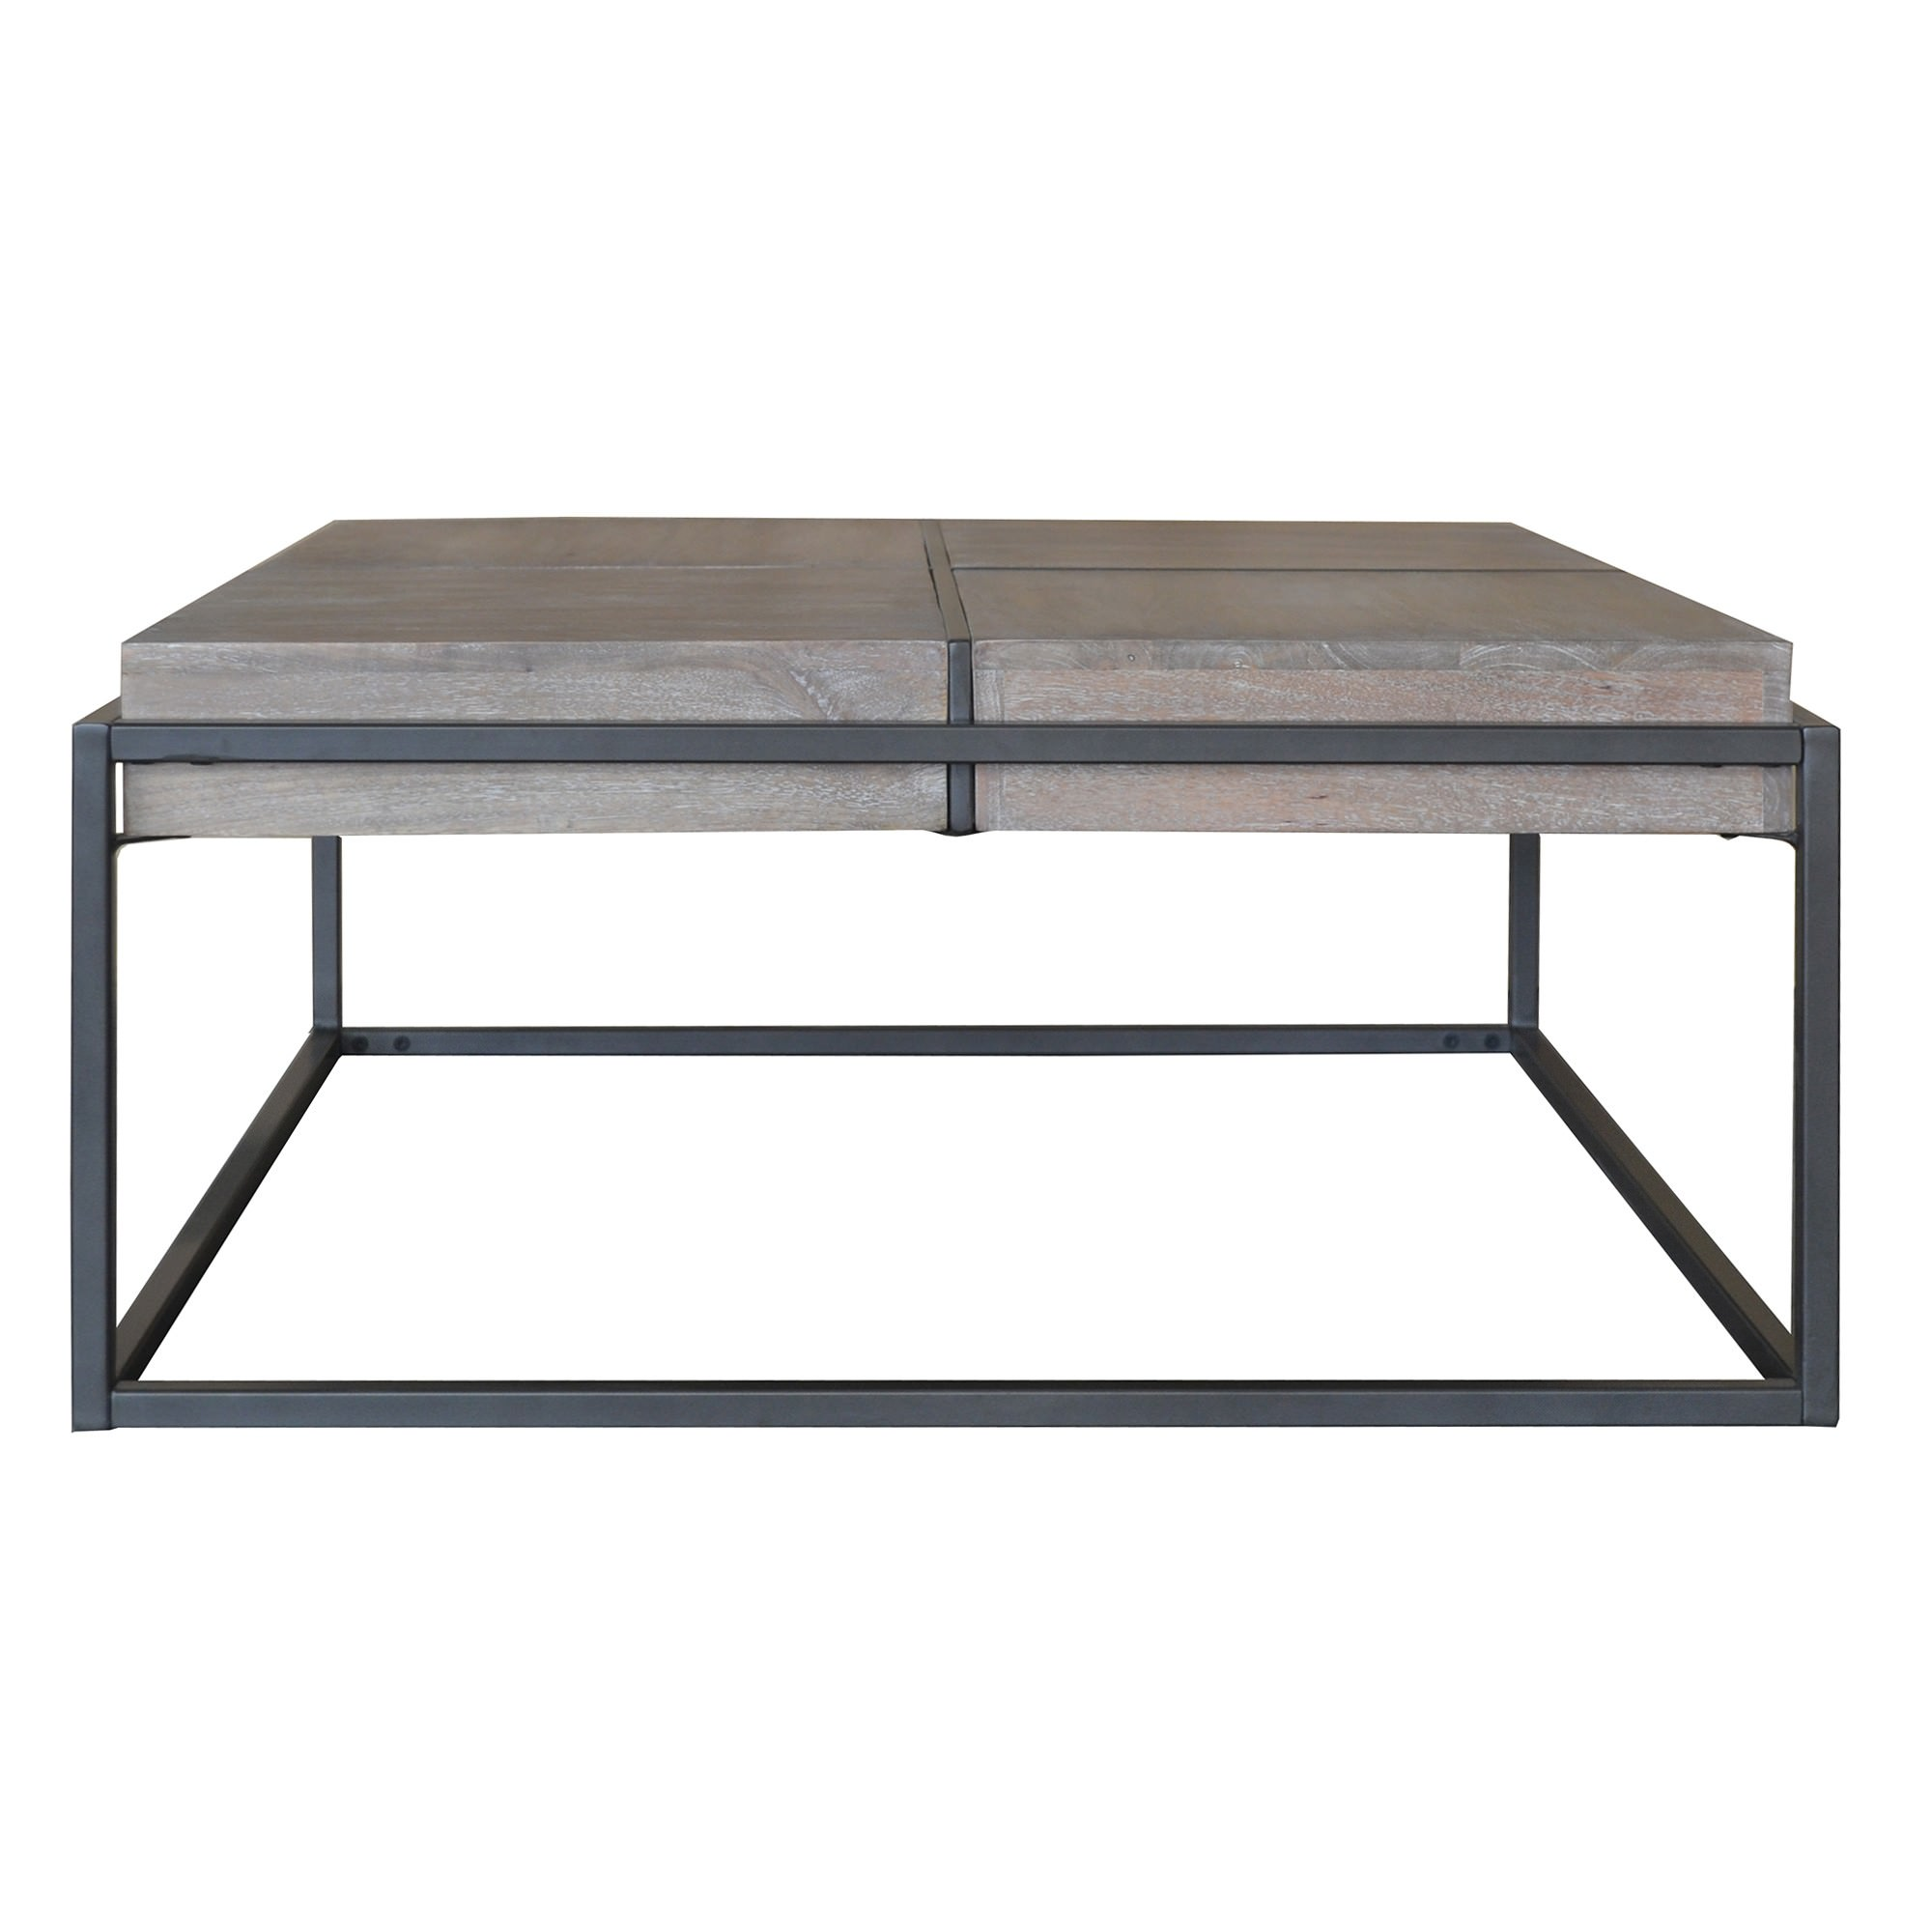 Ampuis Mango Wood & Metal Square Coffee Table, 90cm